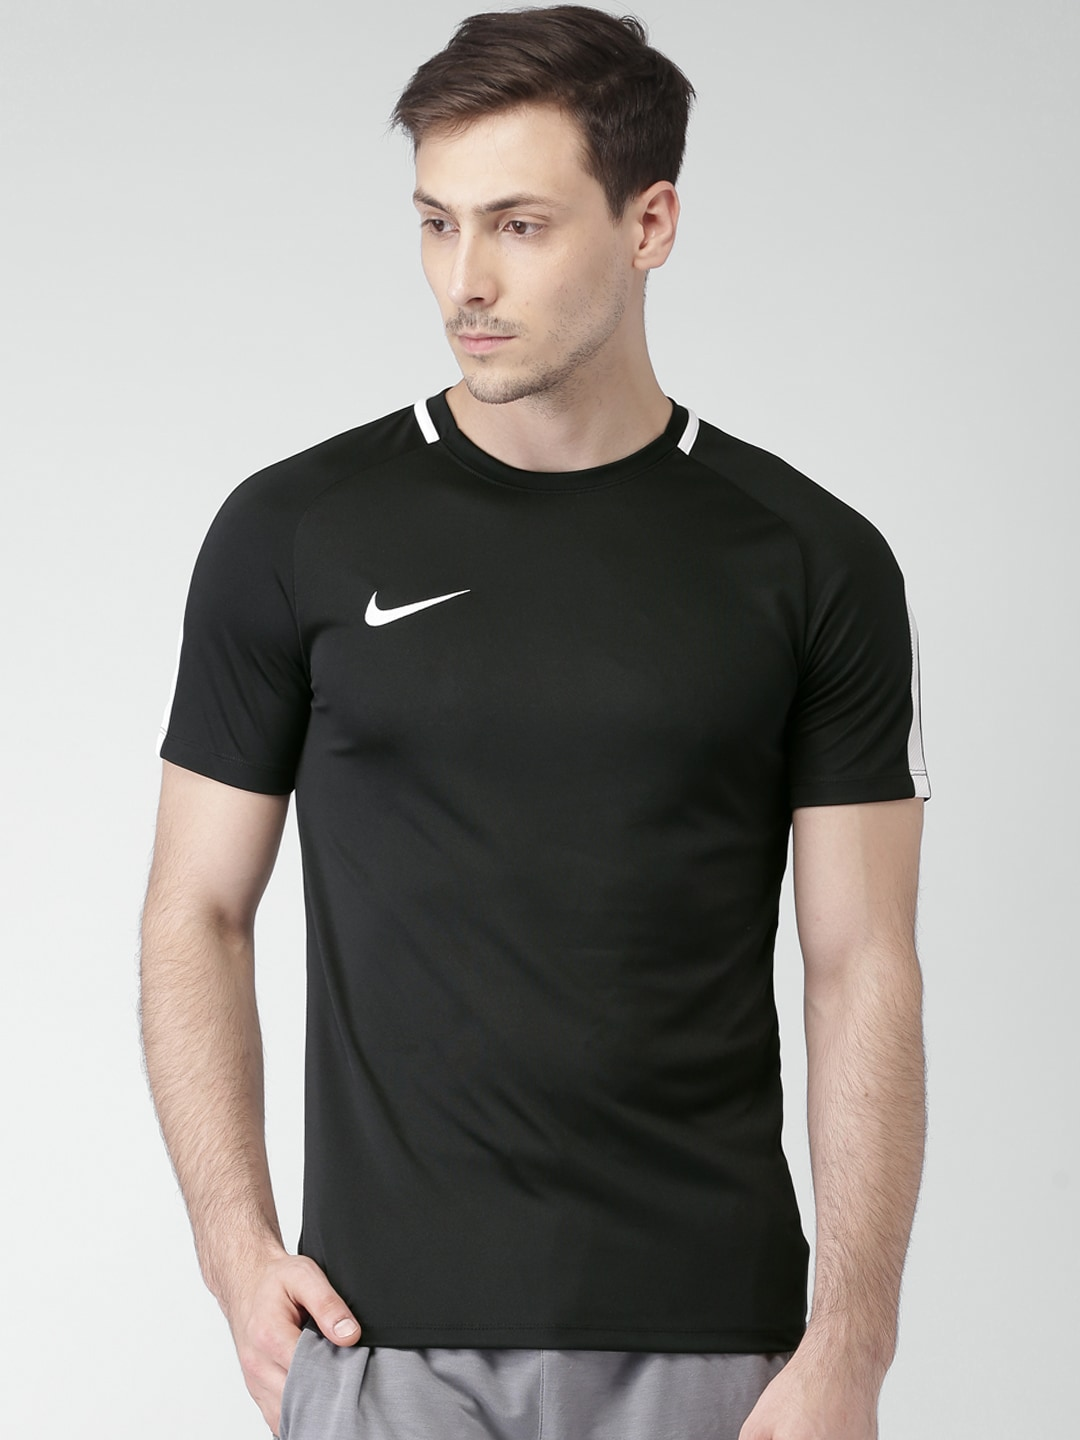 3038d20a6c8 Nike TShirts - Buy Nike T-shirts Online in India